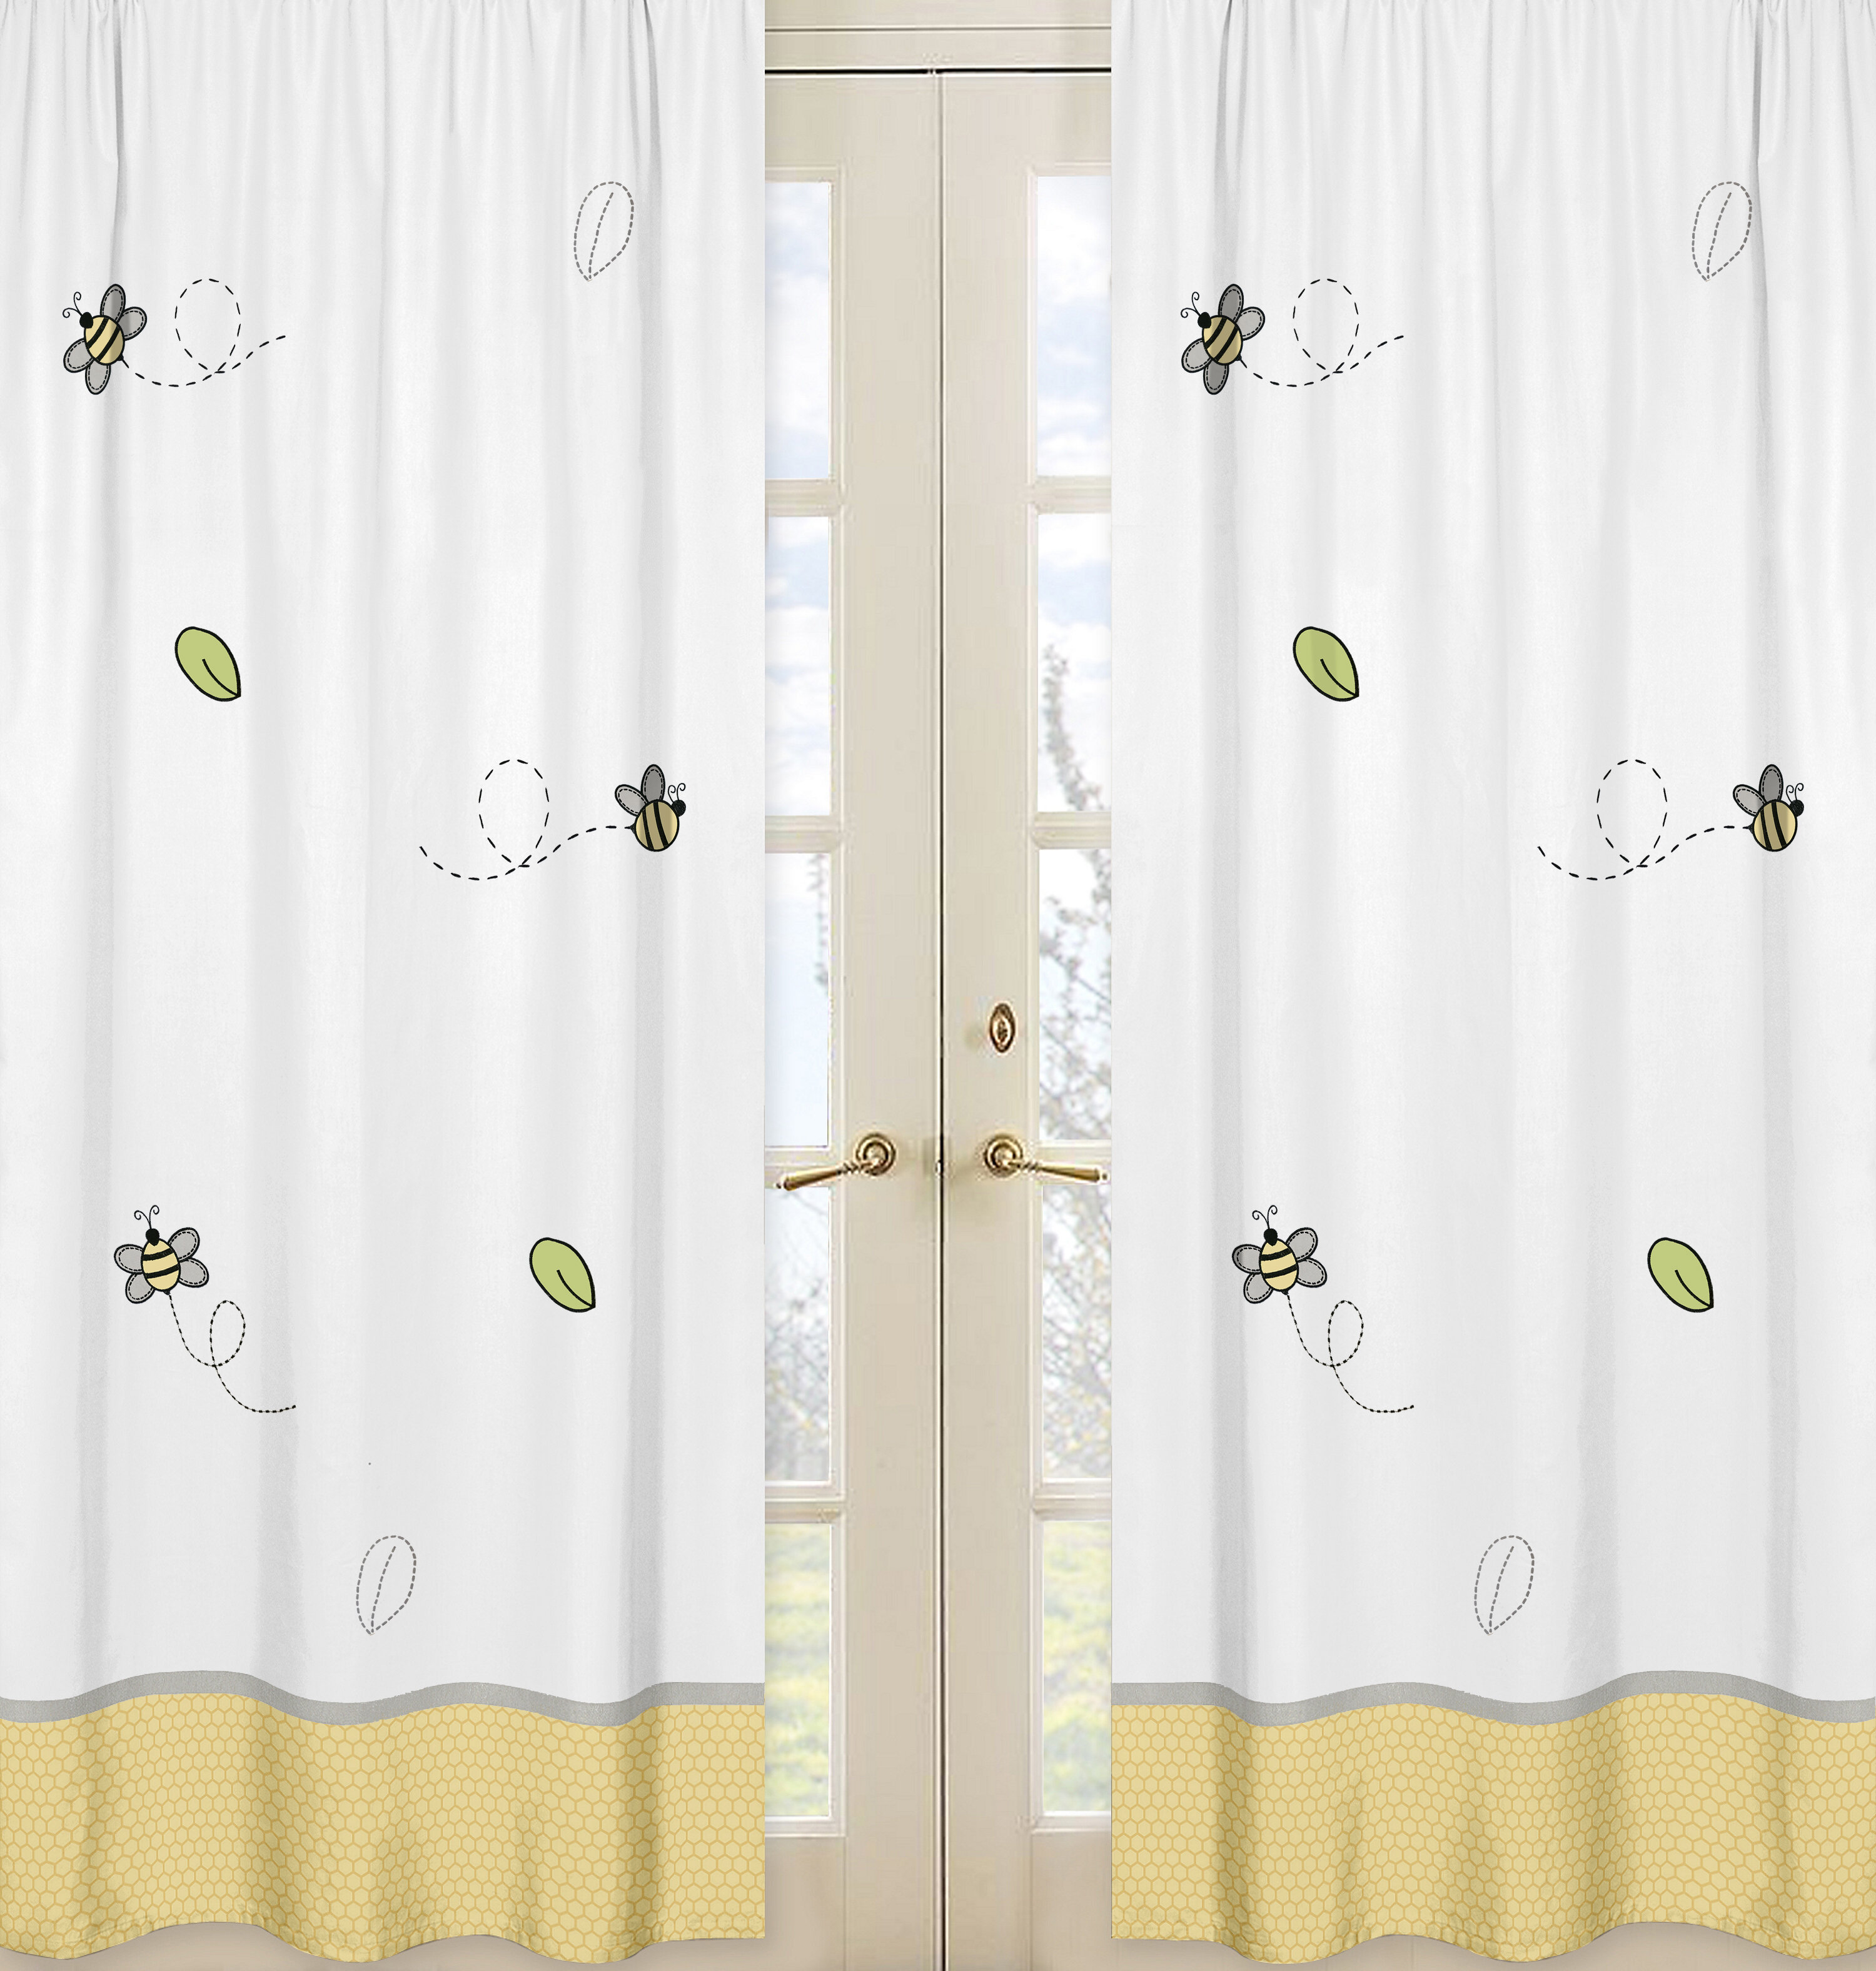 rod hardware at decorative set p bedroom lowes sabelle drapery inch rods shop curtains curtain accent